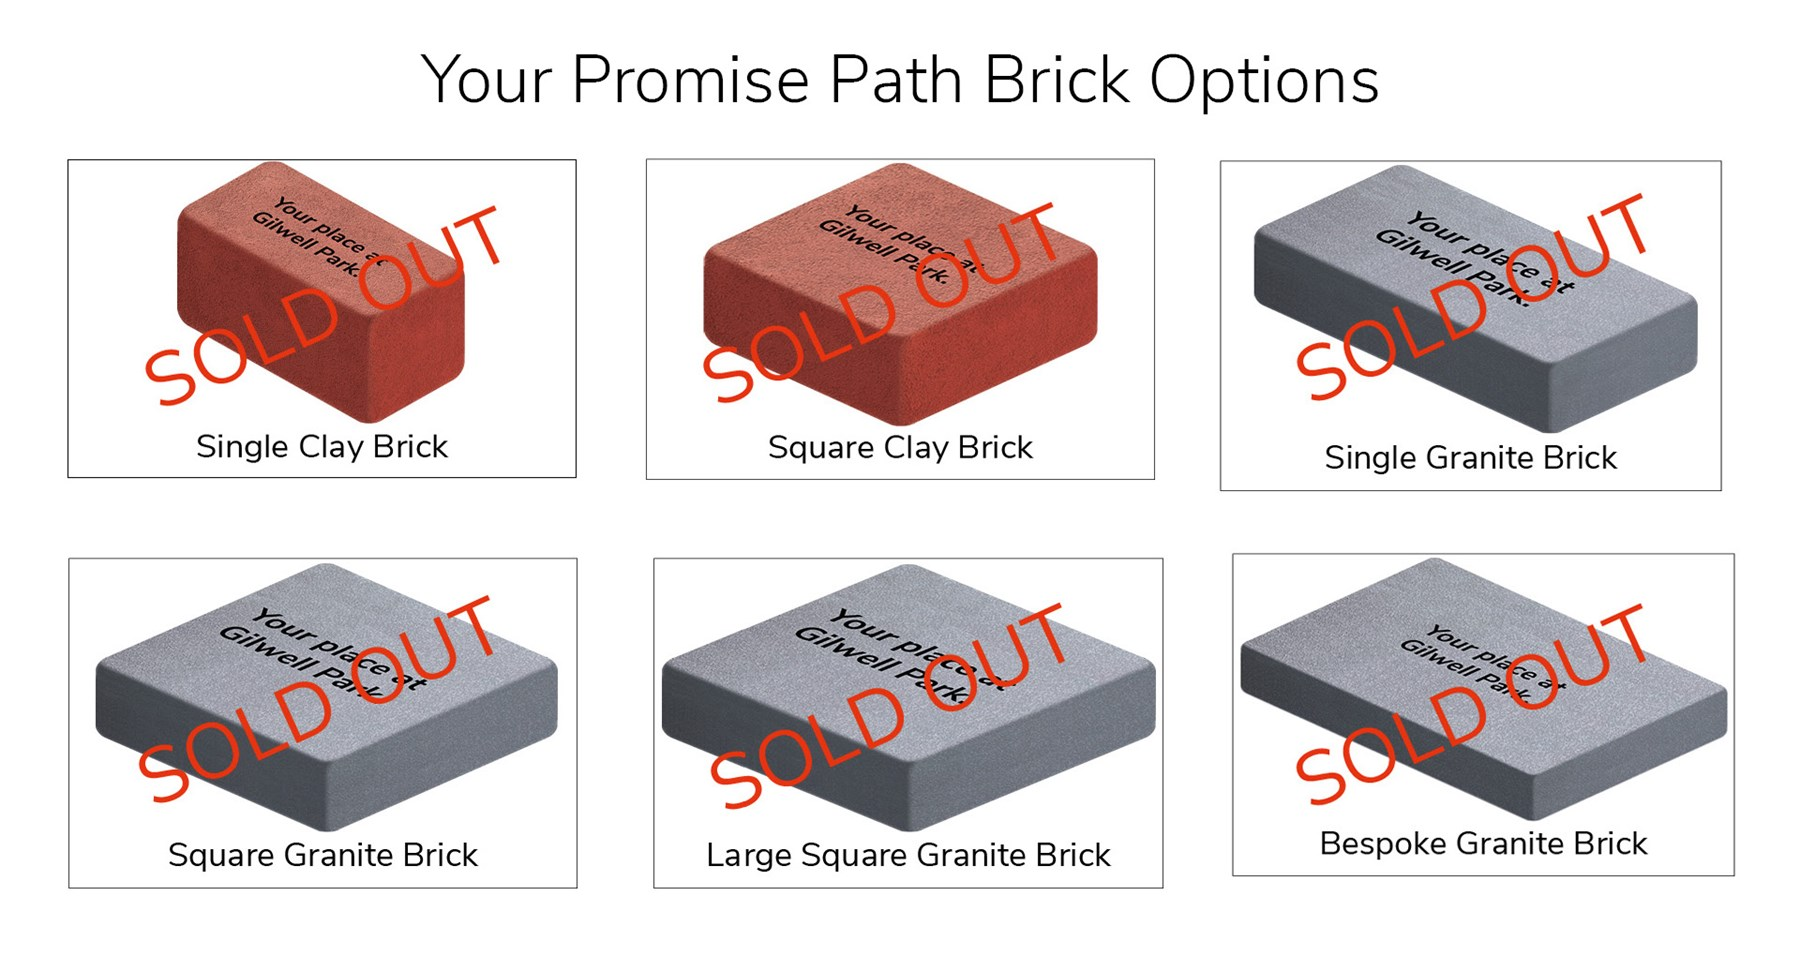 Promise Path brick options - all sold out